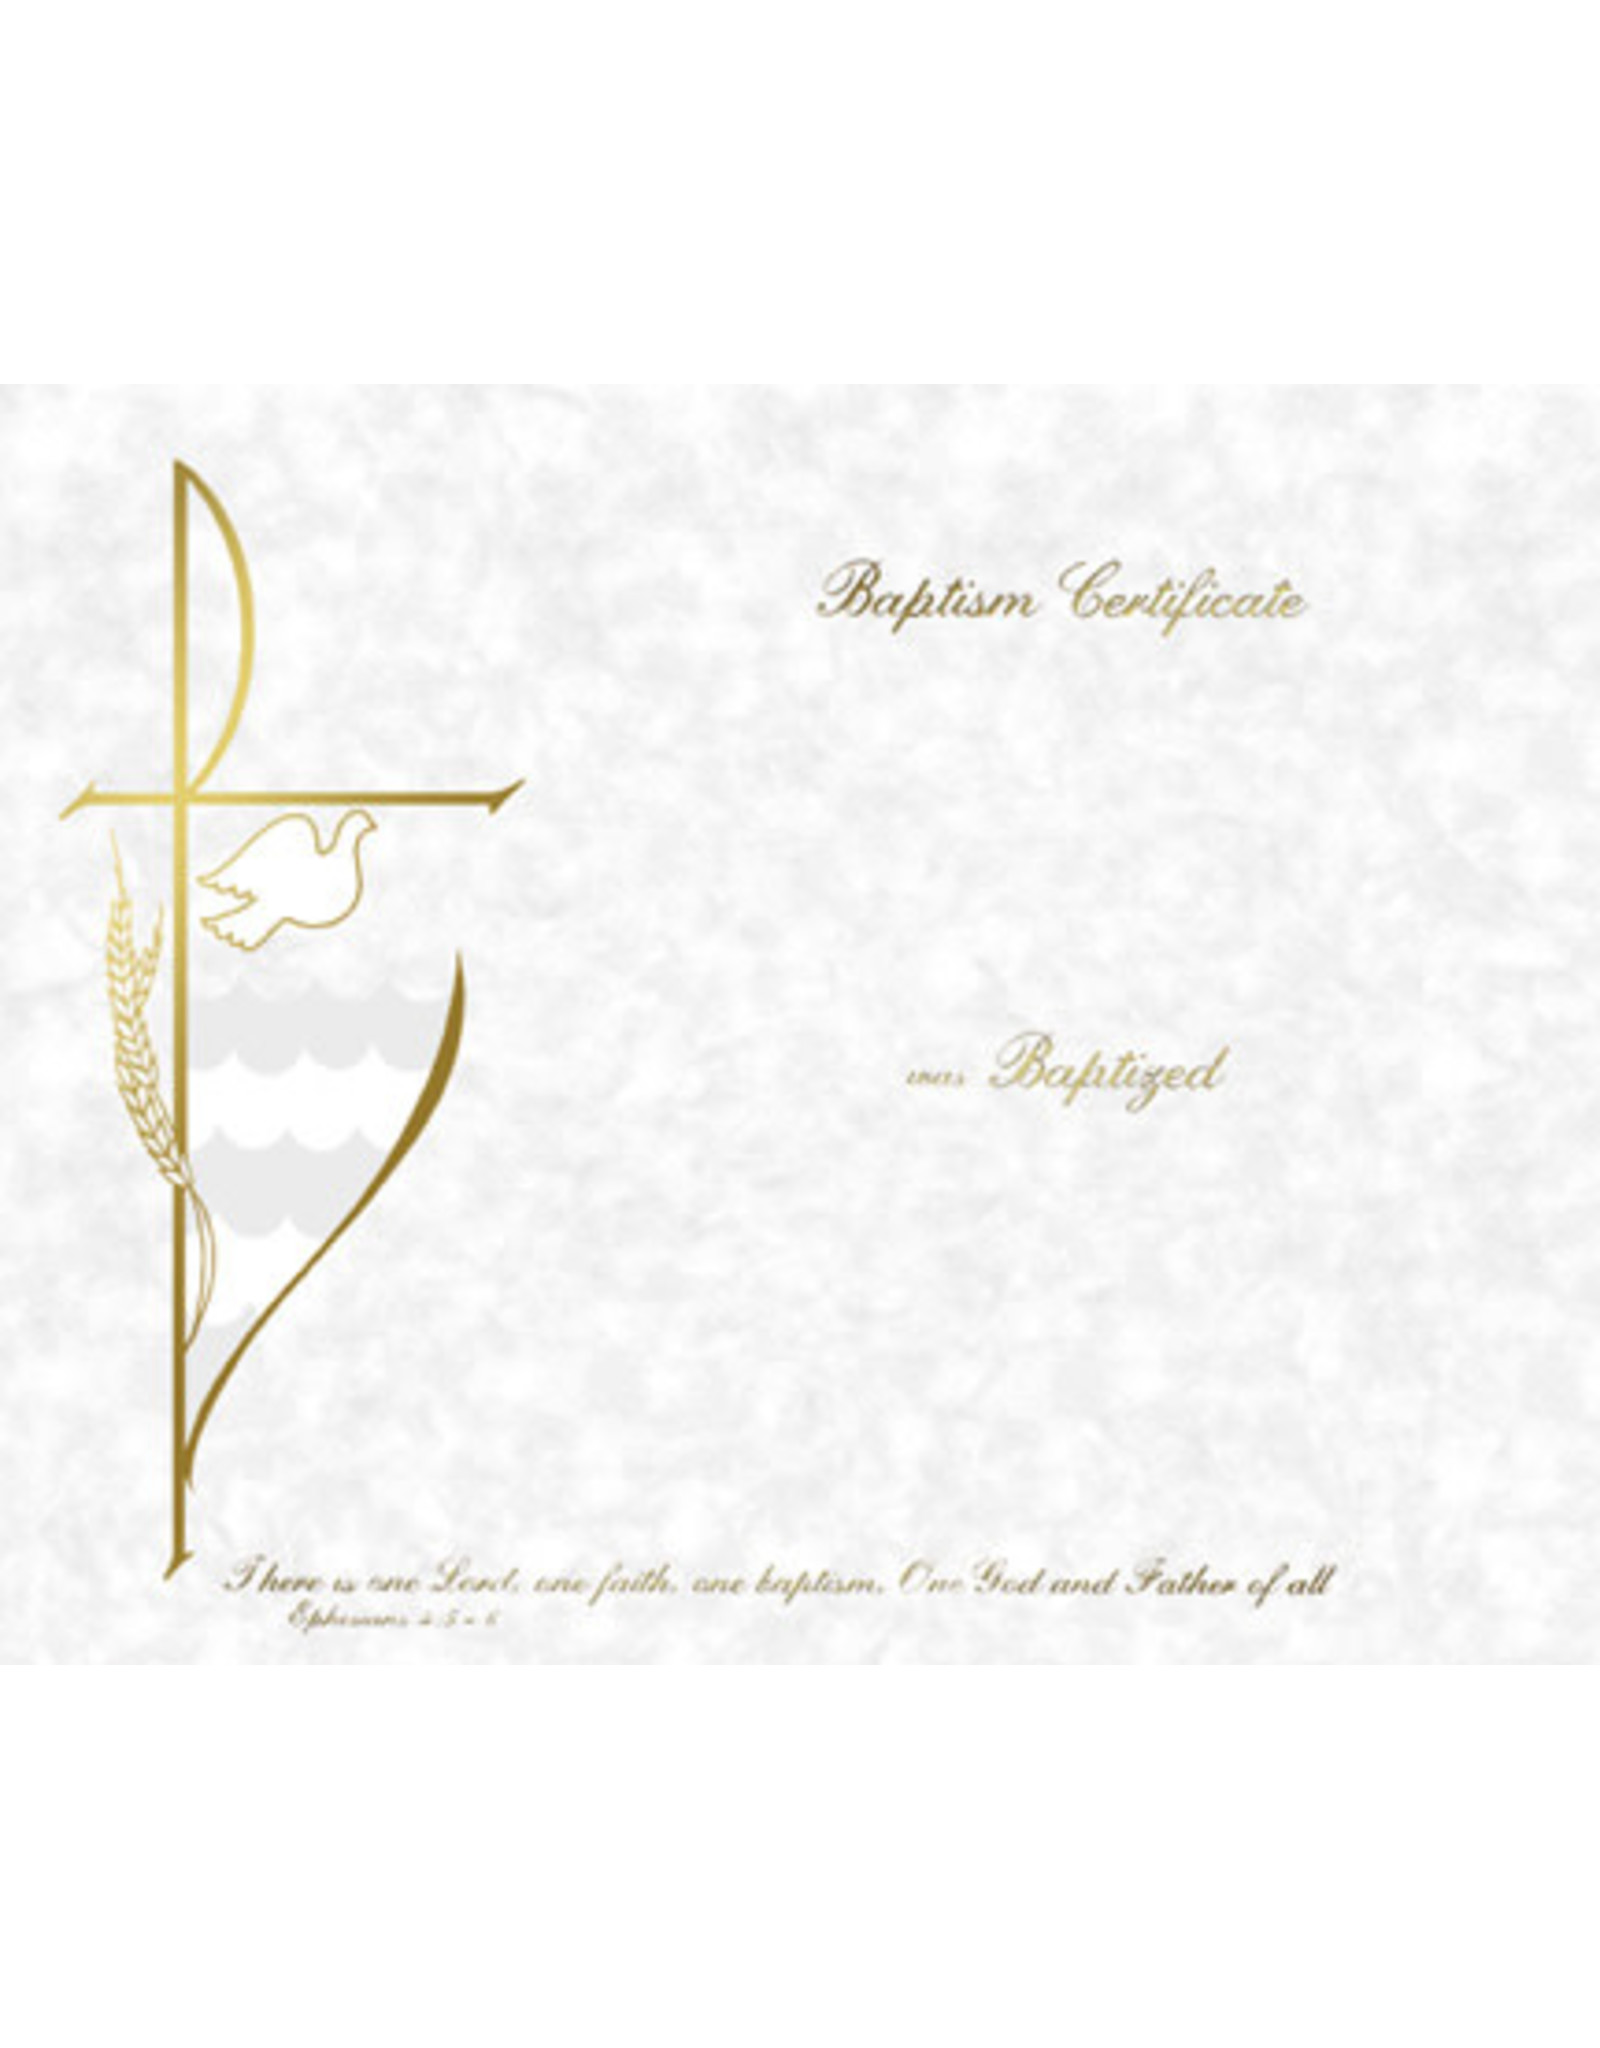 Spanish Baptism Certificates Create-Your-Own (50)